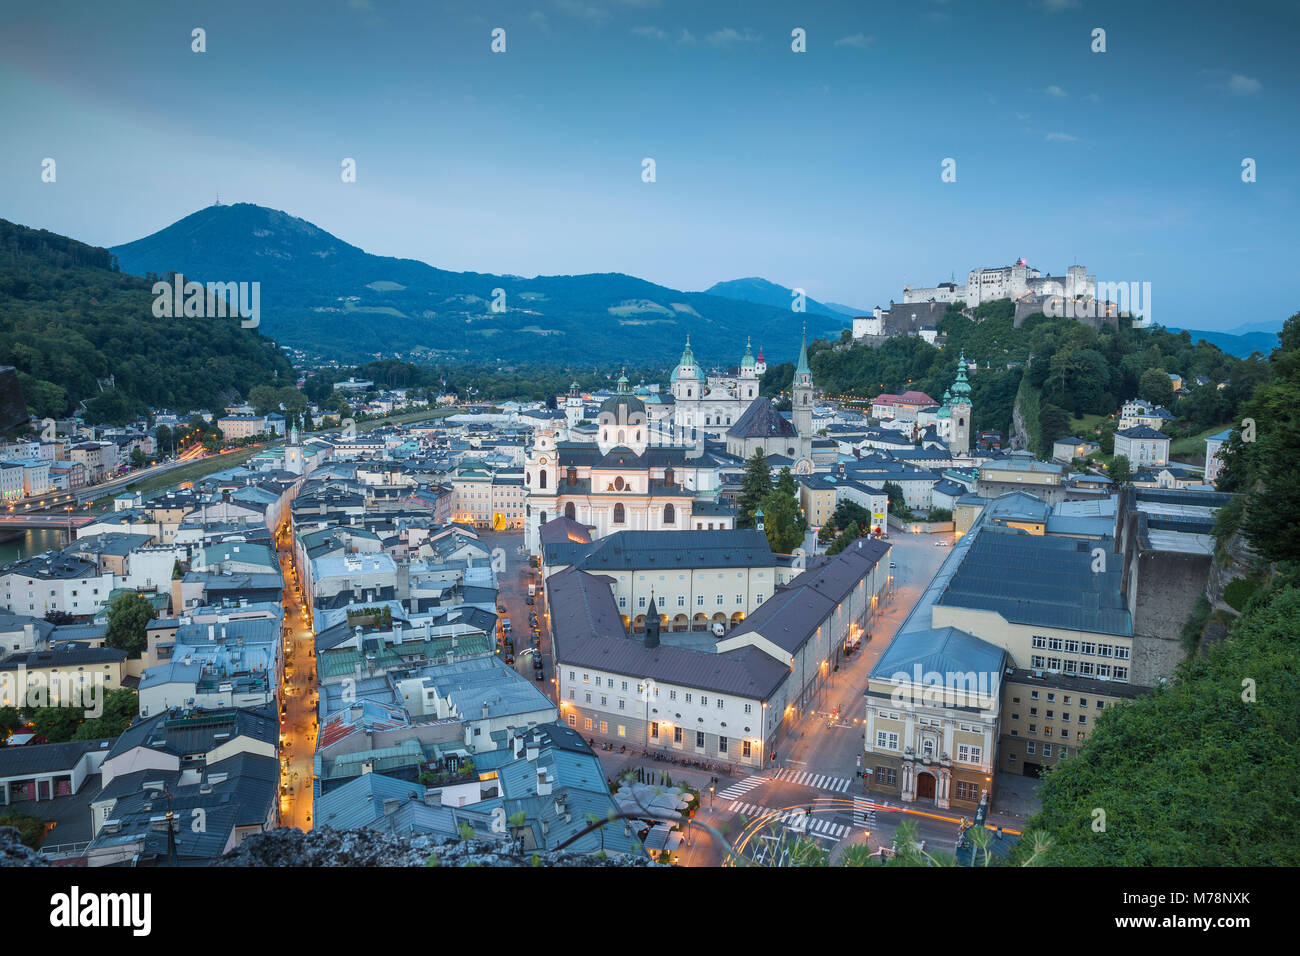 View of Hohensalzburg Castle above The Old City, UNESCO World Heritage Site, Salzburg, Austria, Europe - Stock Image